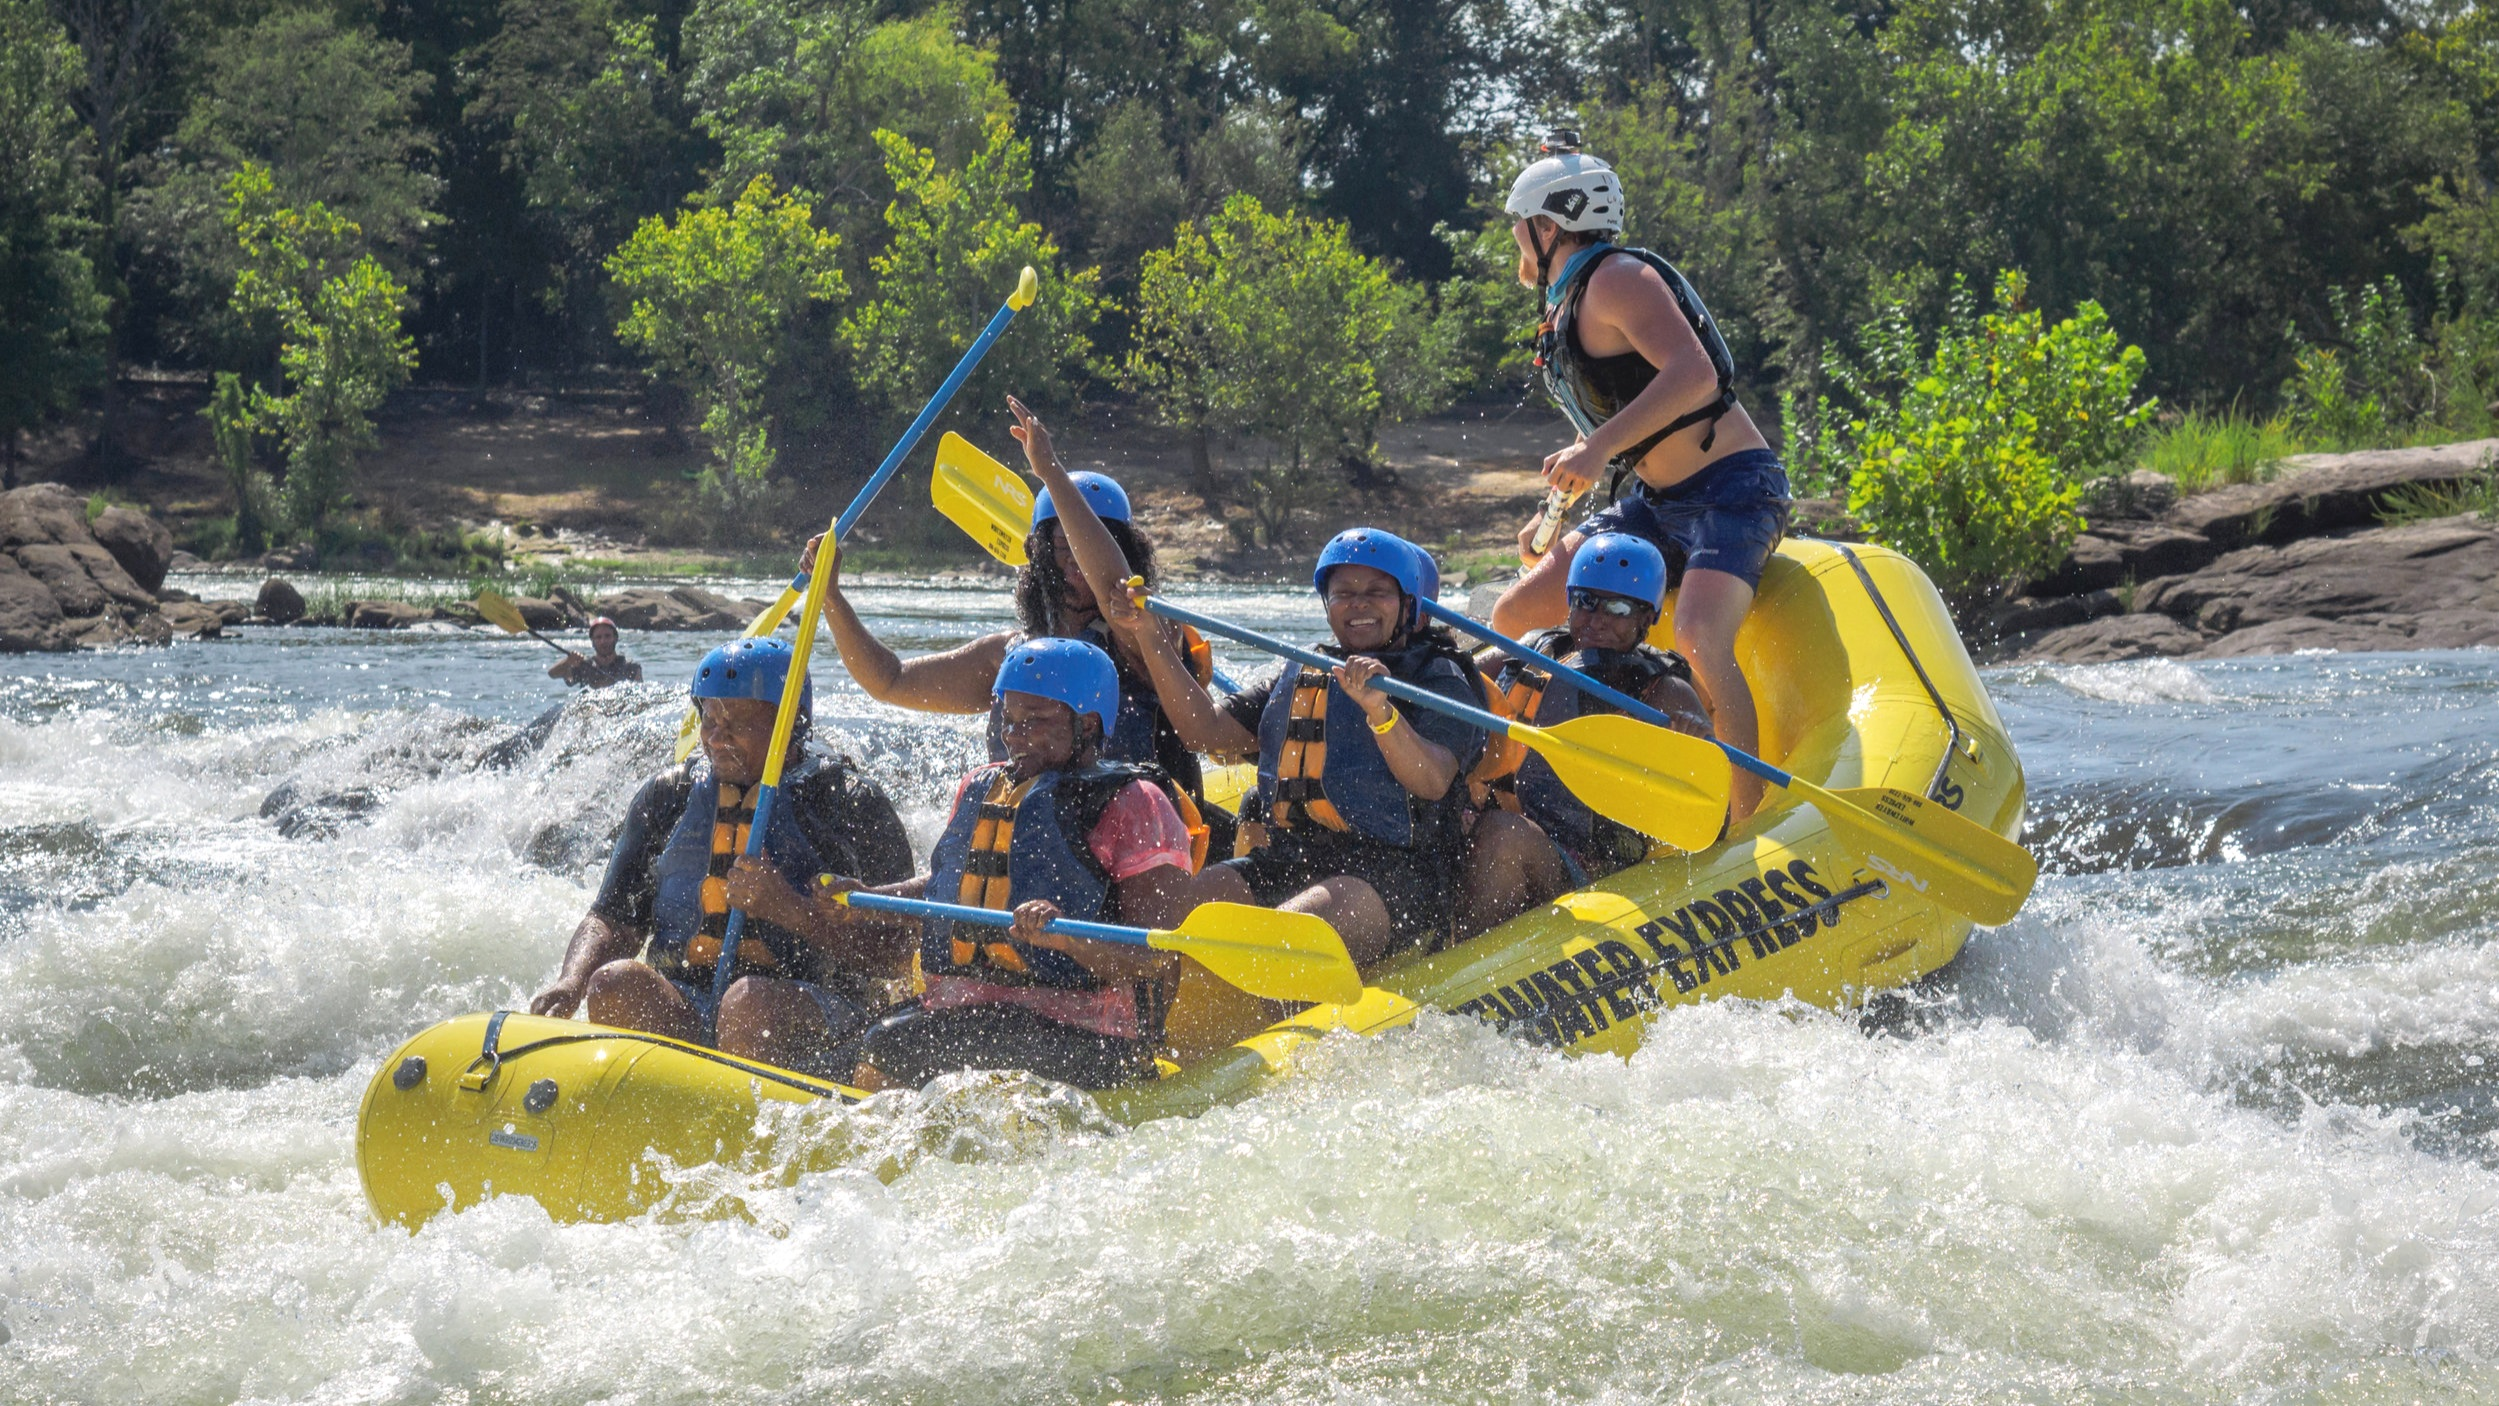 Whitewater rafting on the Chattahoochee In Columbus by William Brawley